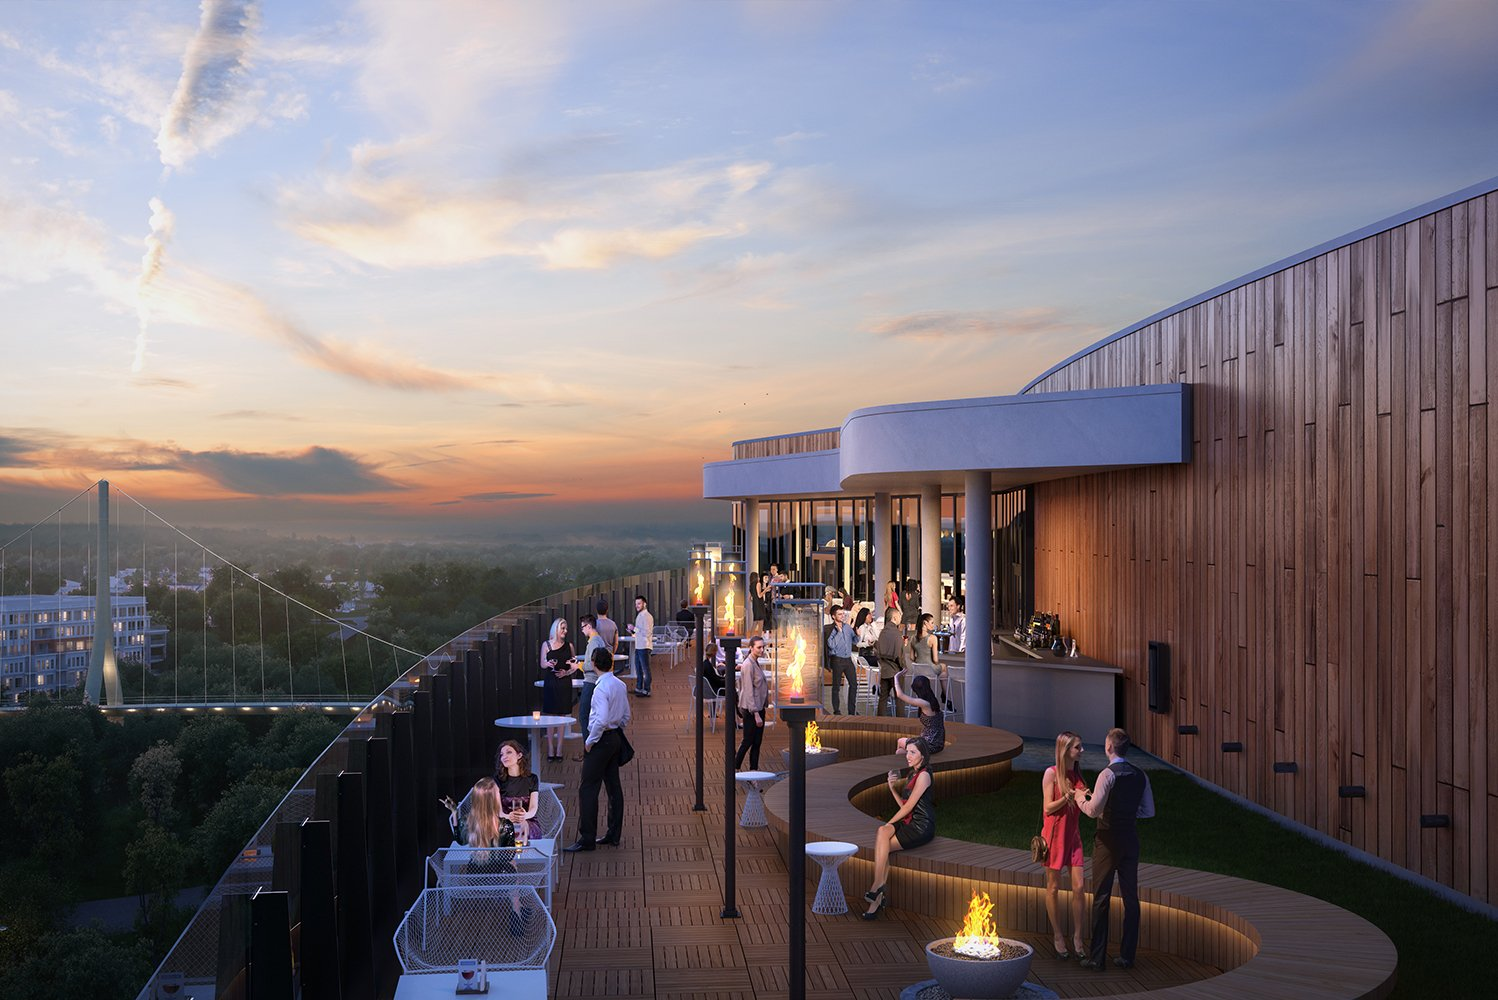 The rooftop restaurant will have woods, tile and copper accents, as well as Spanish-inspired art.